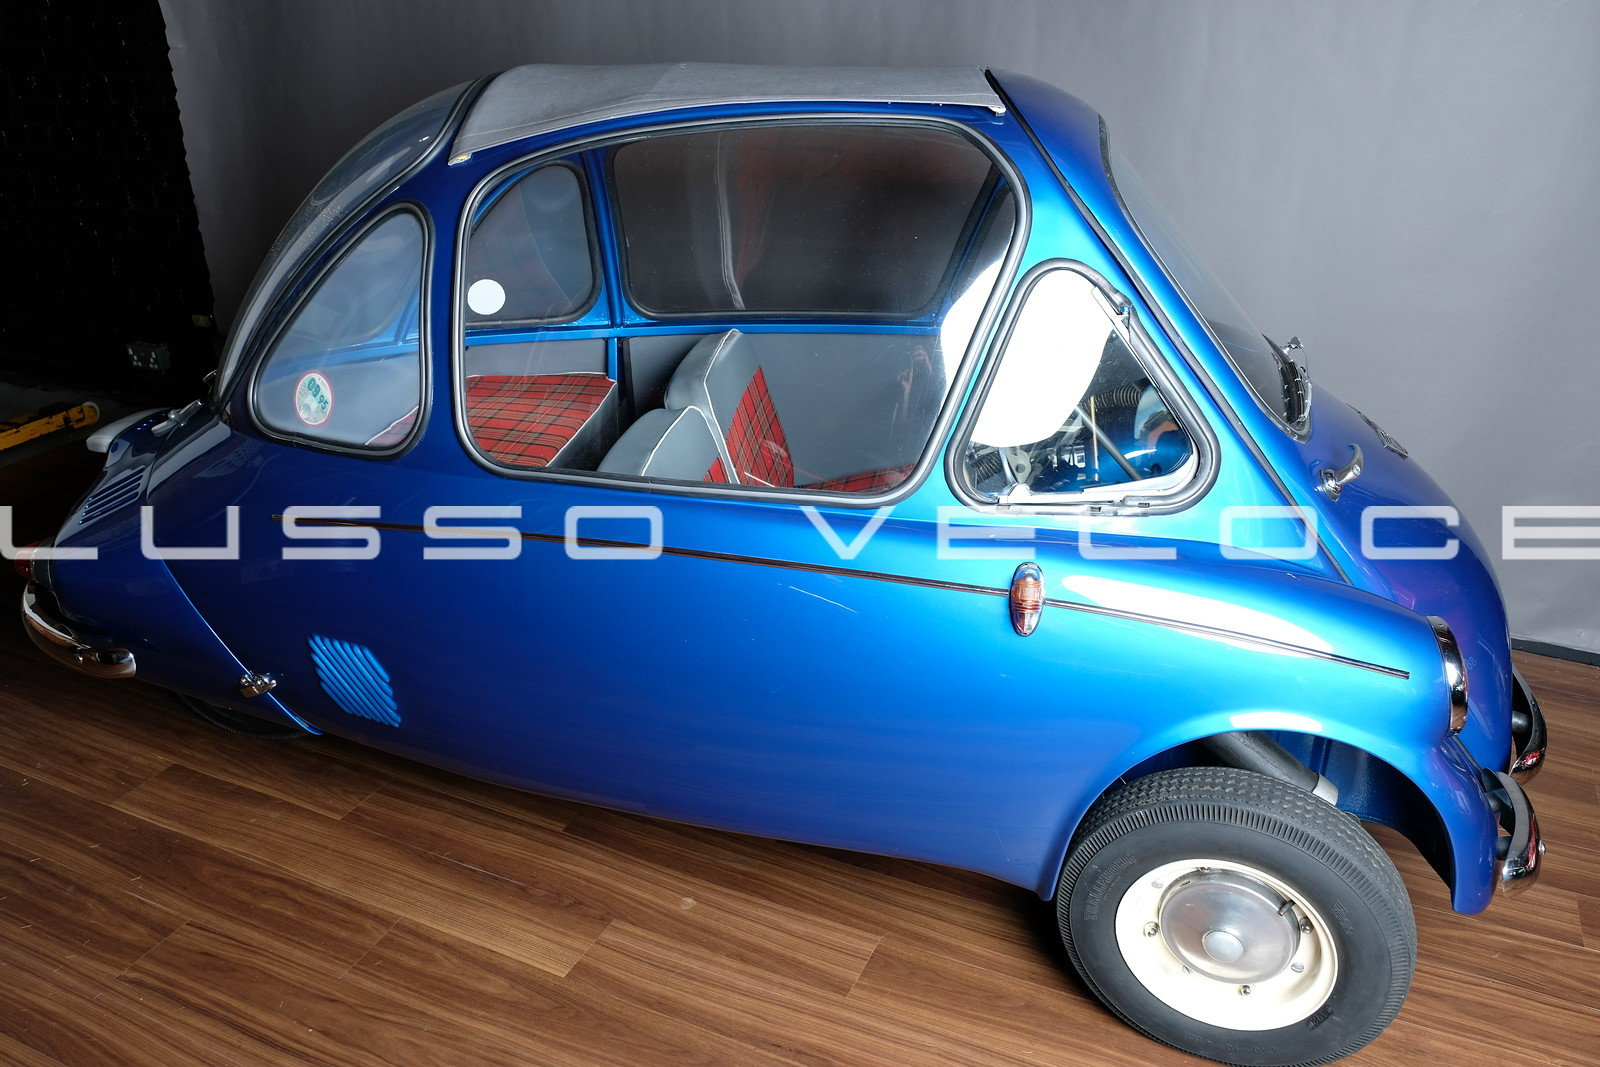 1962 Heinkle Trojan Bubble car  For Sale (picture 5 of 6)